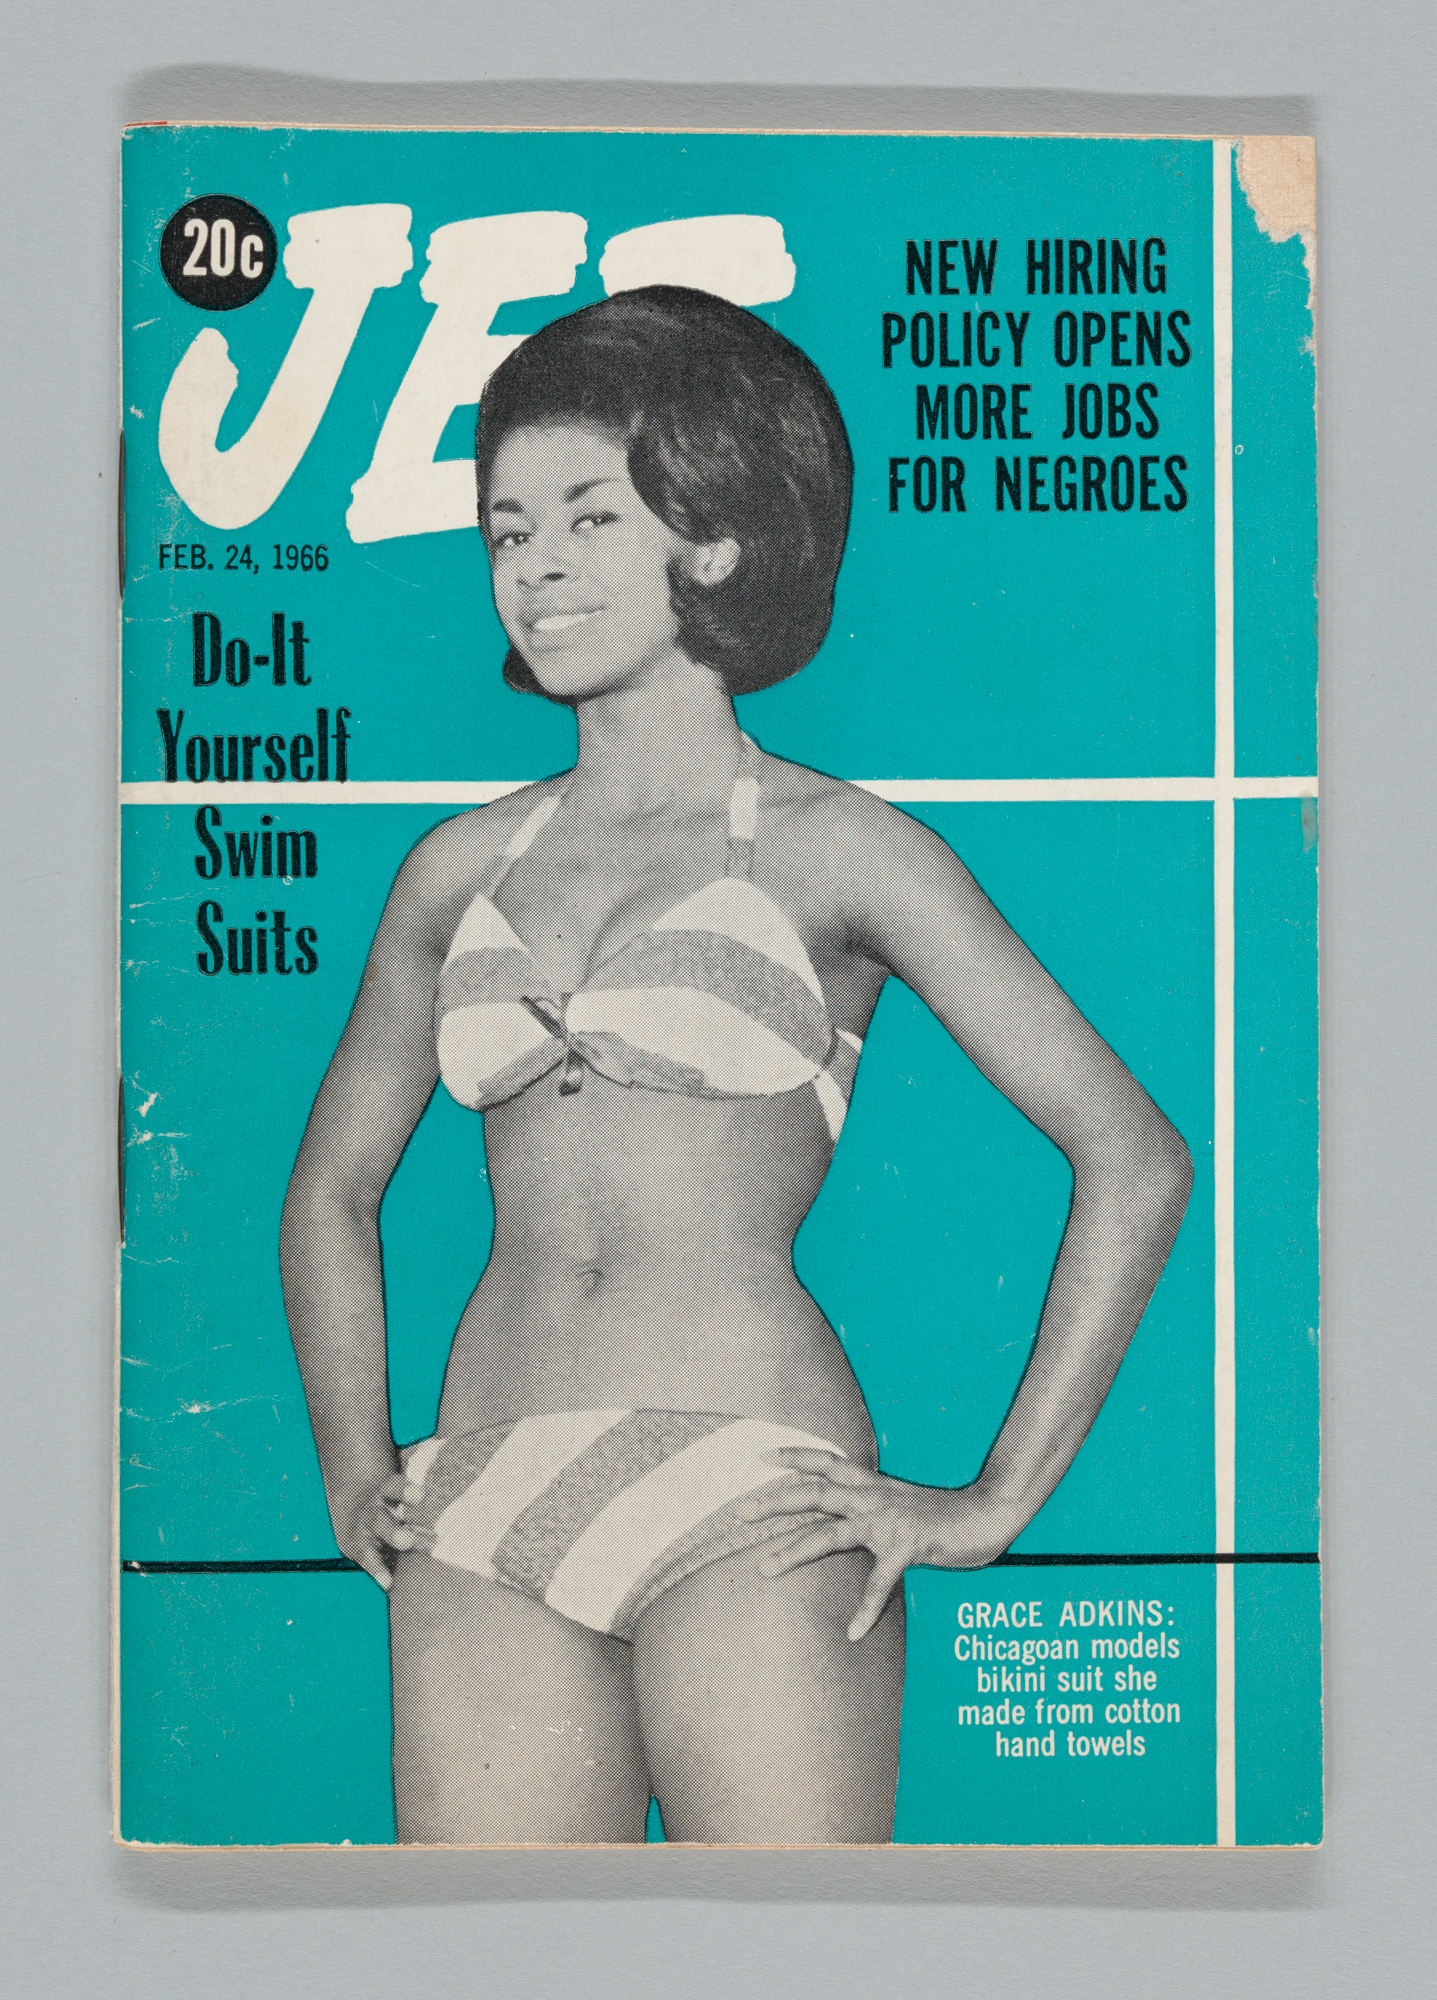 Jet Magazine, Feb. 24, 1966. Cover